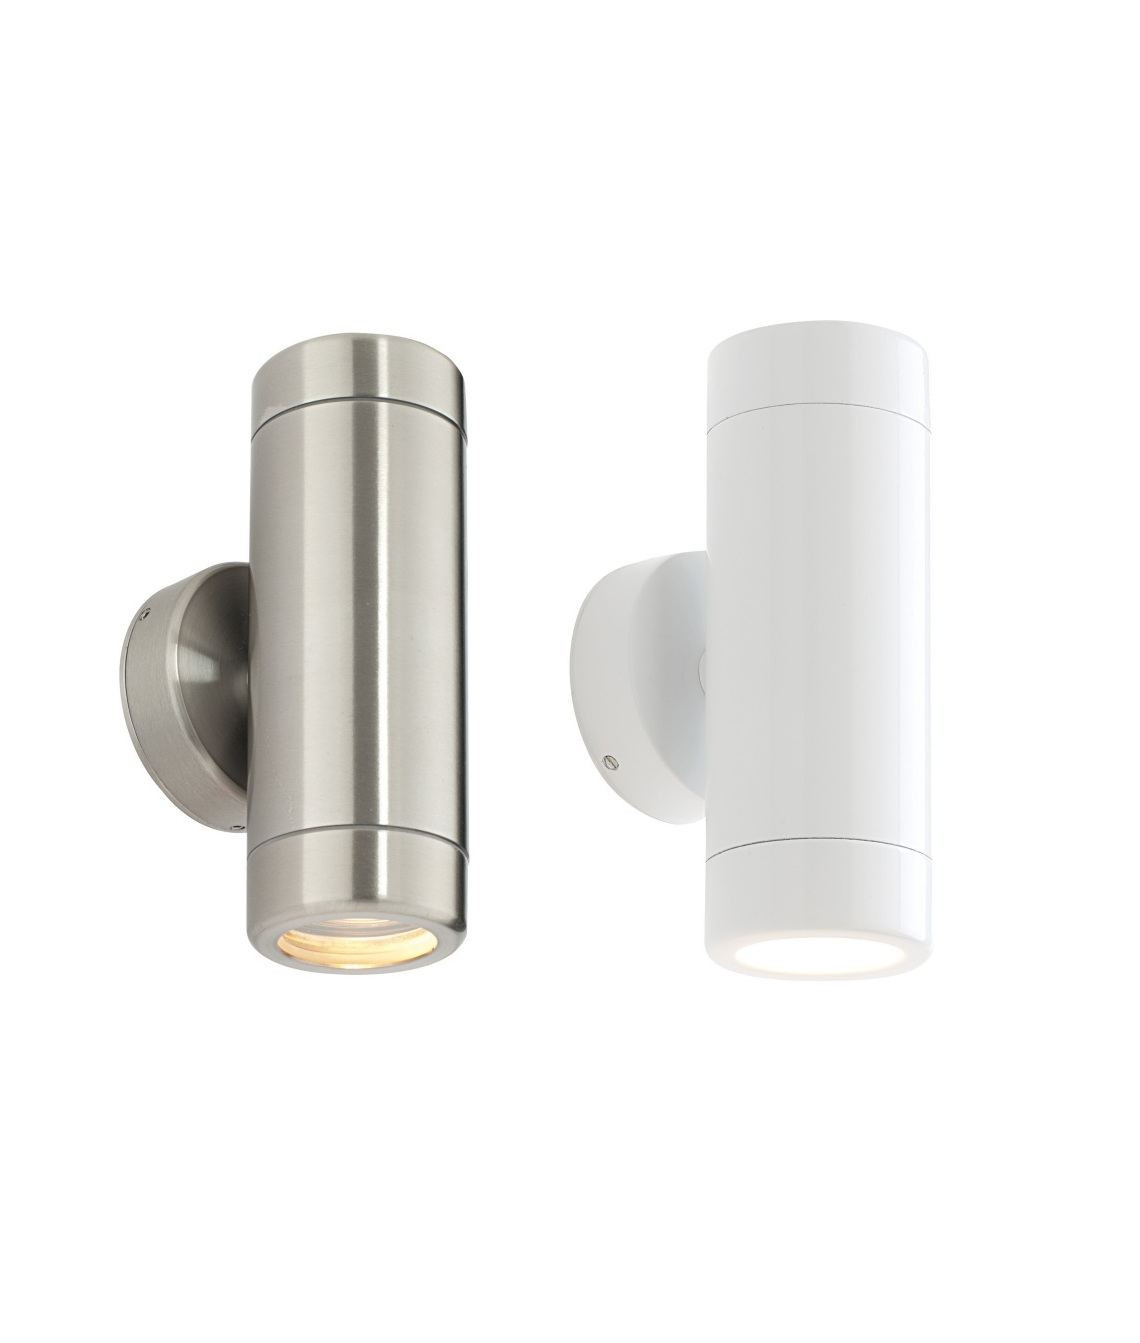 Exterior up down ip44 ip65 wall light for Exterior up down wall light